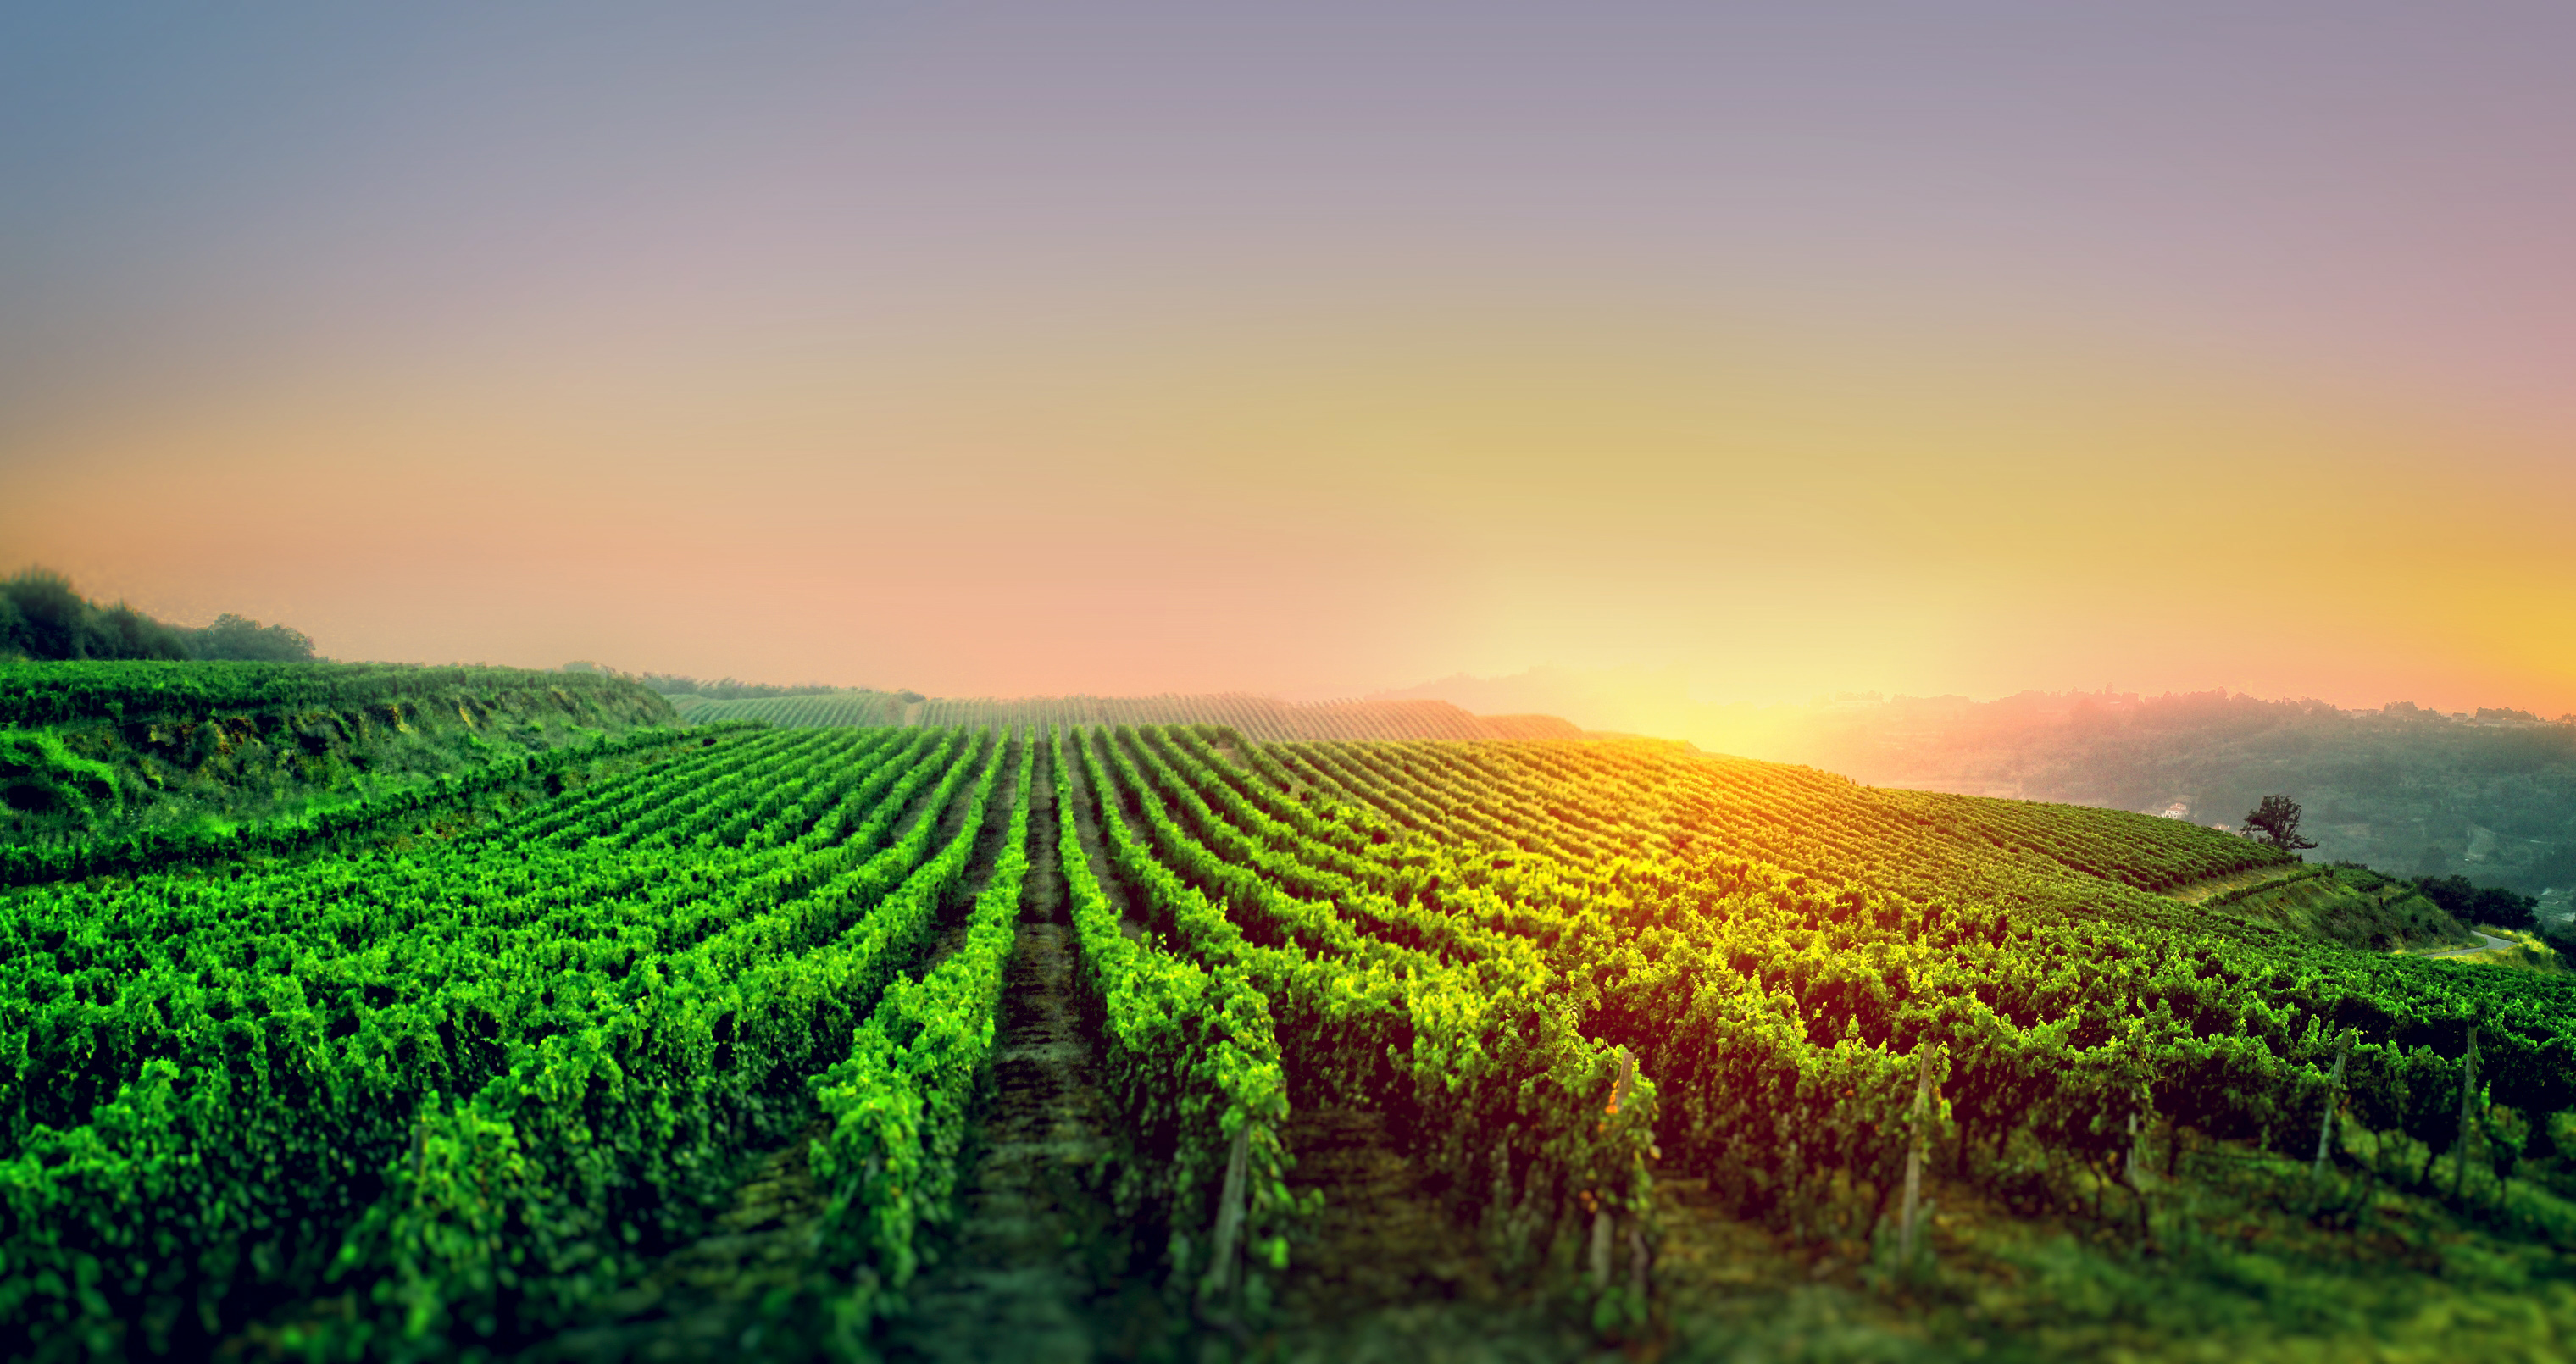 Sunrise over the vineyard photo